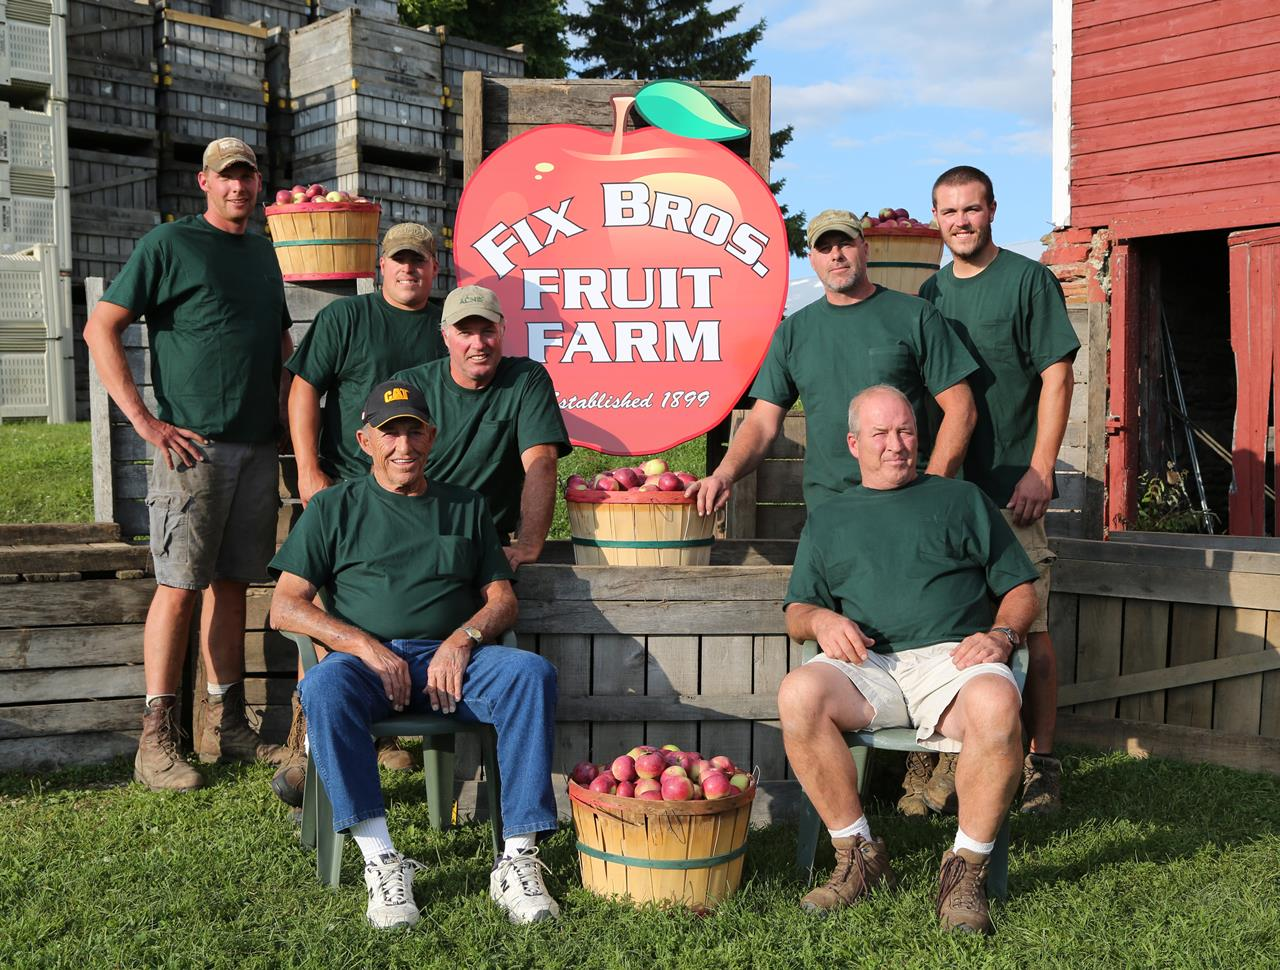 Bob Sr, Bob, Gary, David, Steve, Brad, Brandon 4th and 5th generations at Fix Bros. Fruit Farm, Hudson, New York